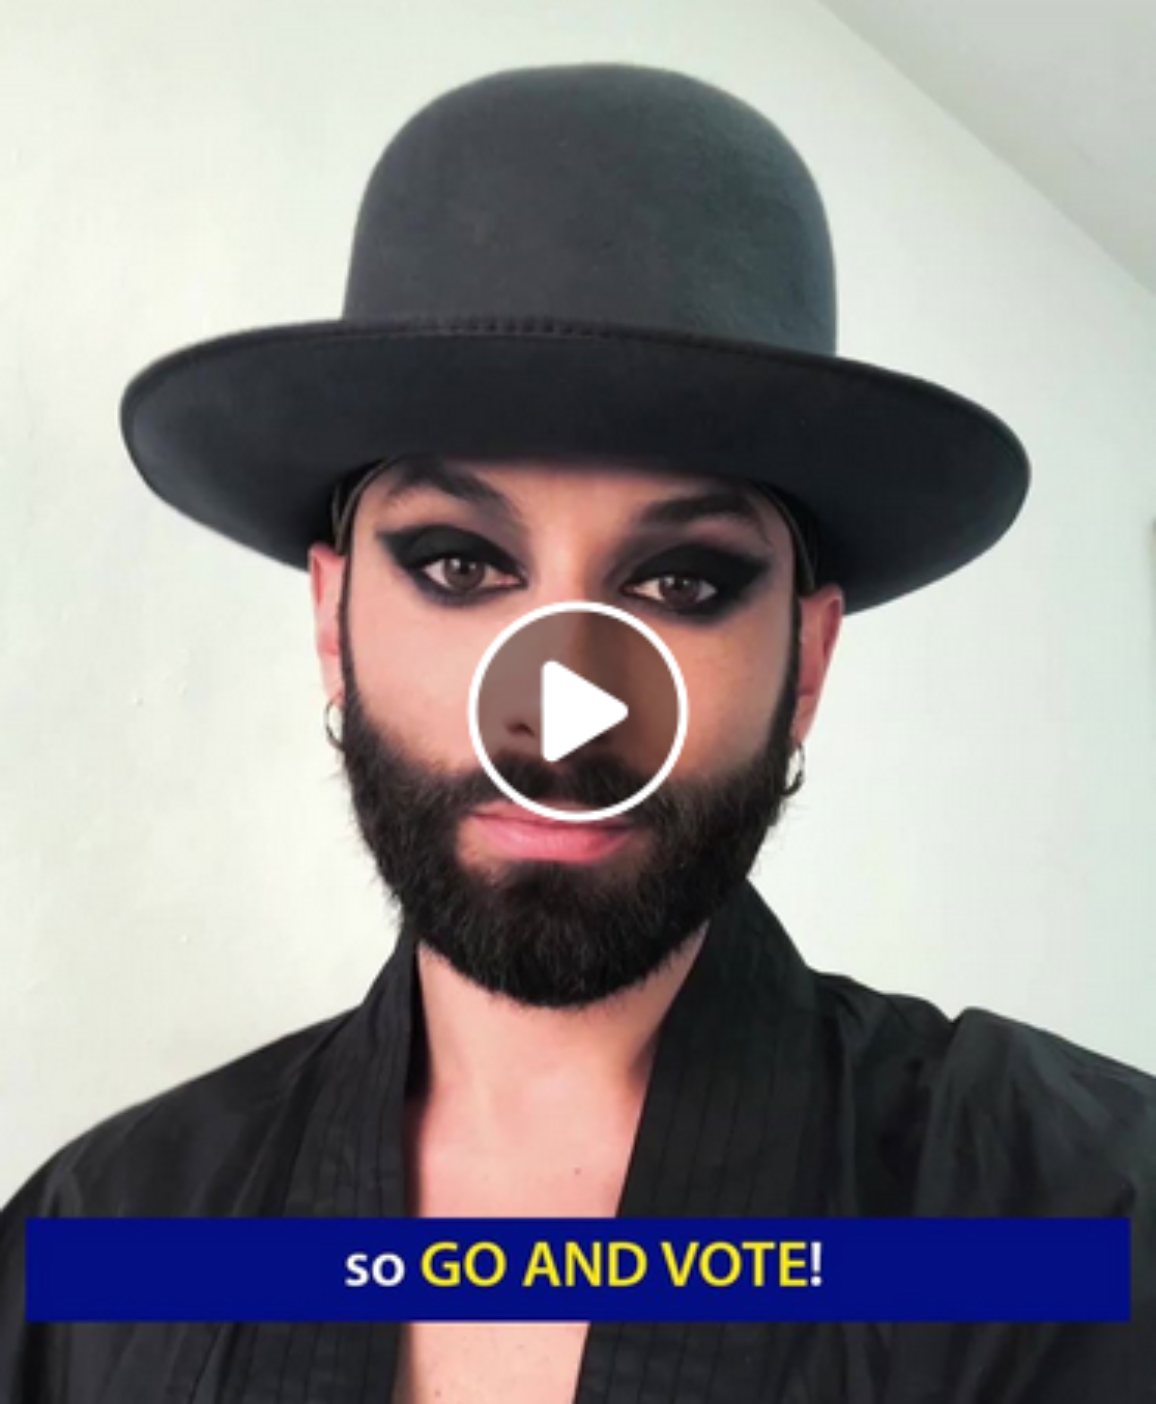 Eurovision Song Contest winner Conchita Wurst calls on Europeans to cast their ballot